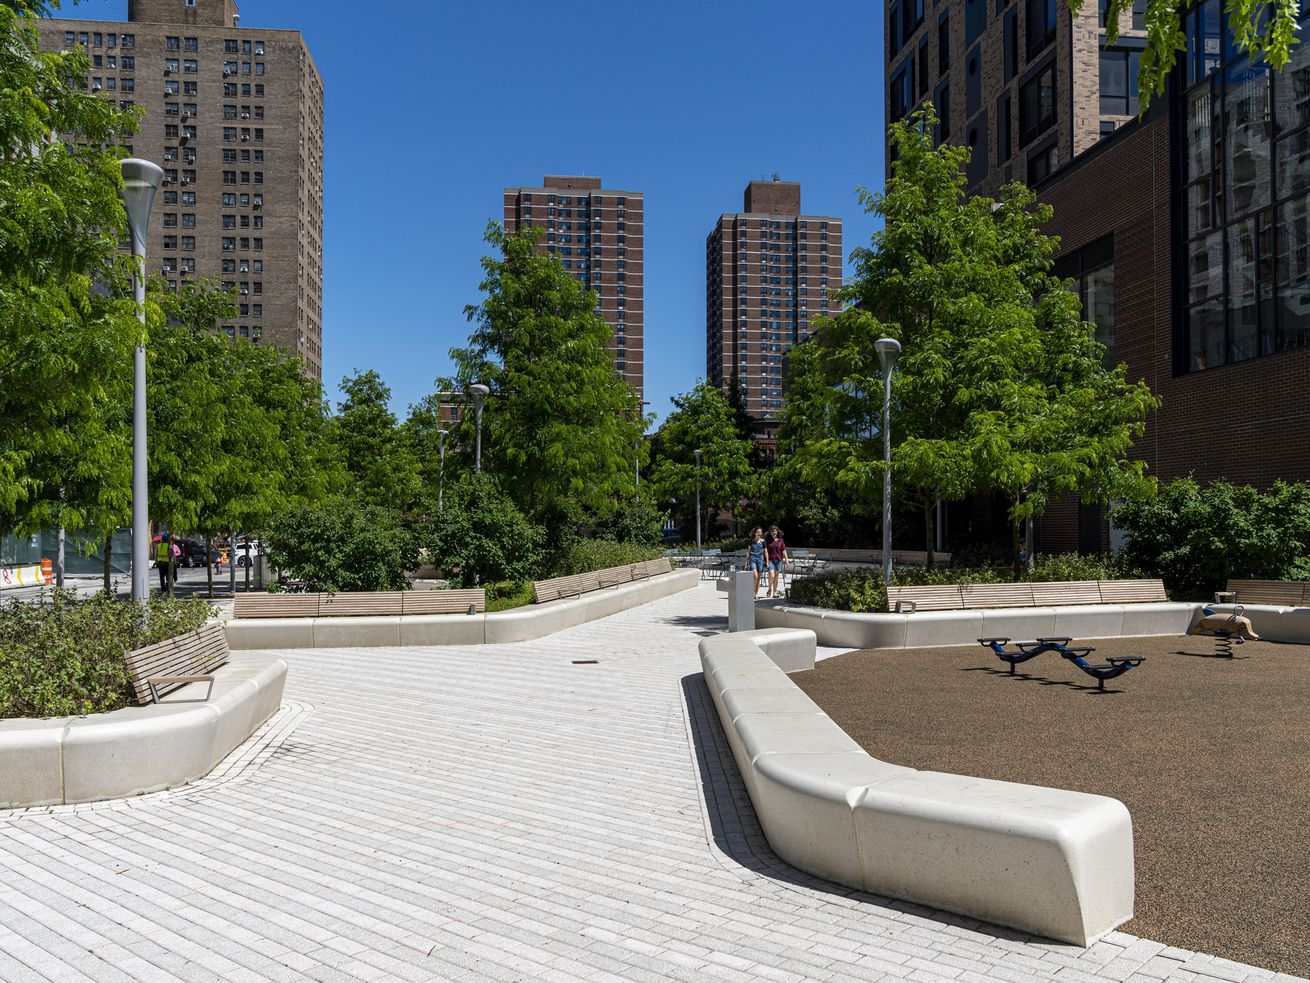 A new park opened at Essex Street Crossing on Broome Street this week.